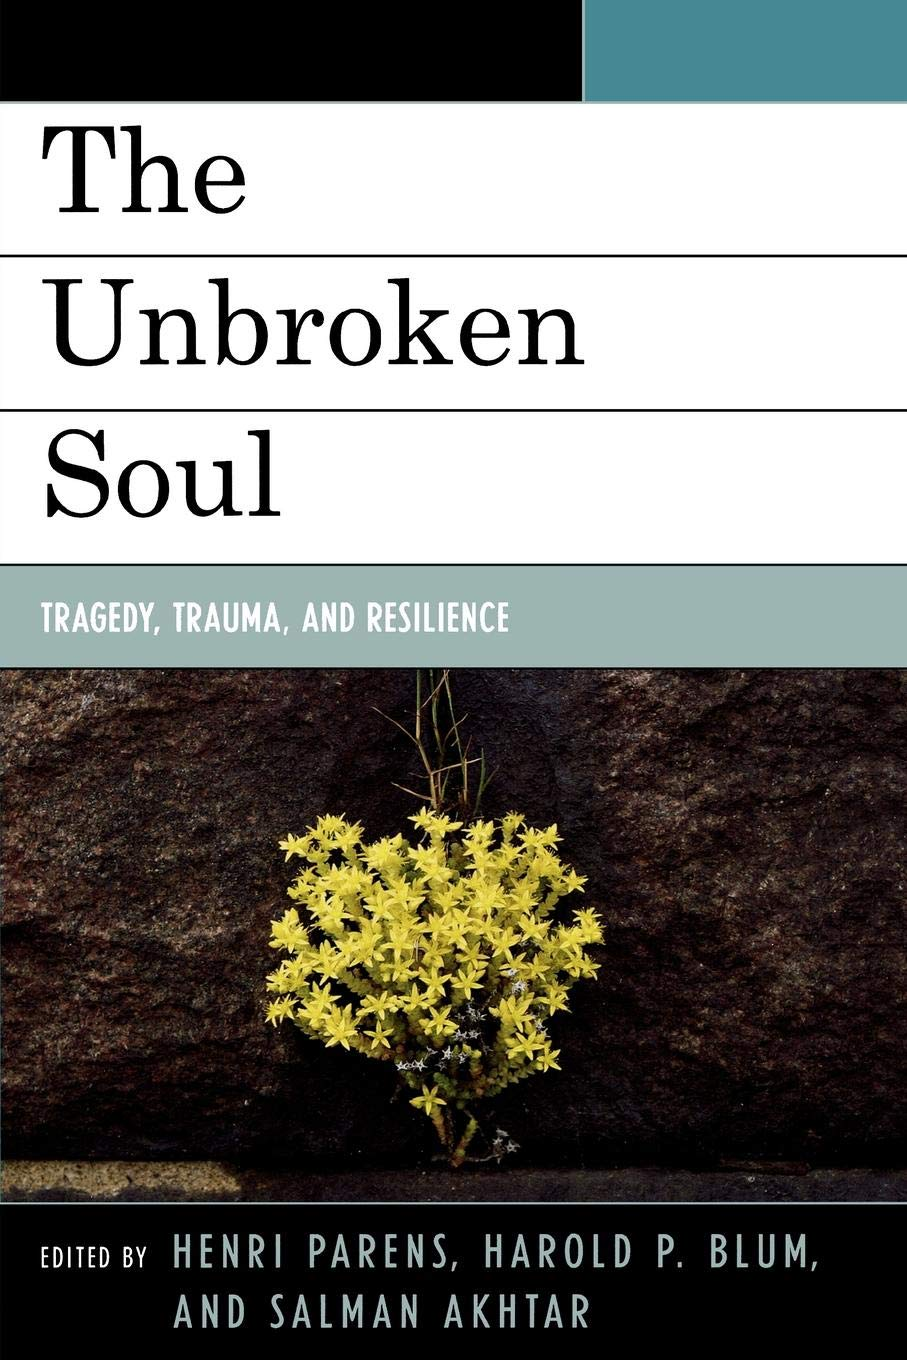 Download The Unbroken Soul: Tragedy, Trauma, and Human Resilience (Margaret S. Mahler) PDF